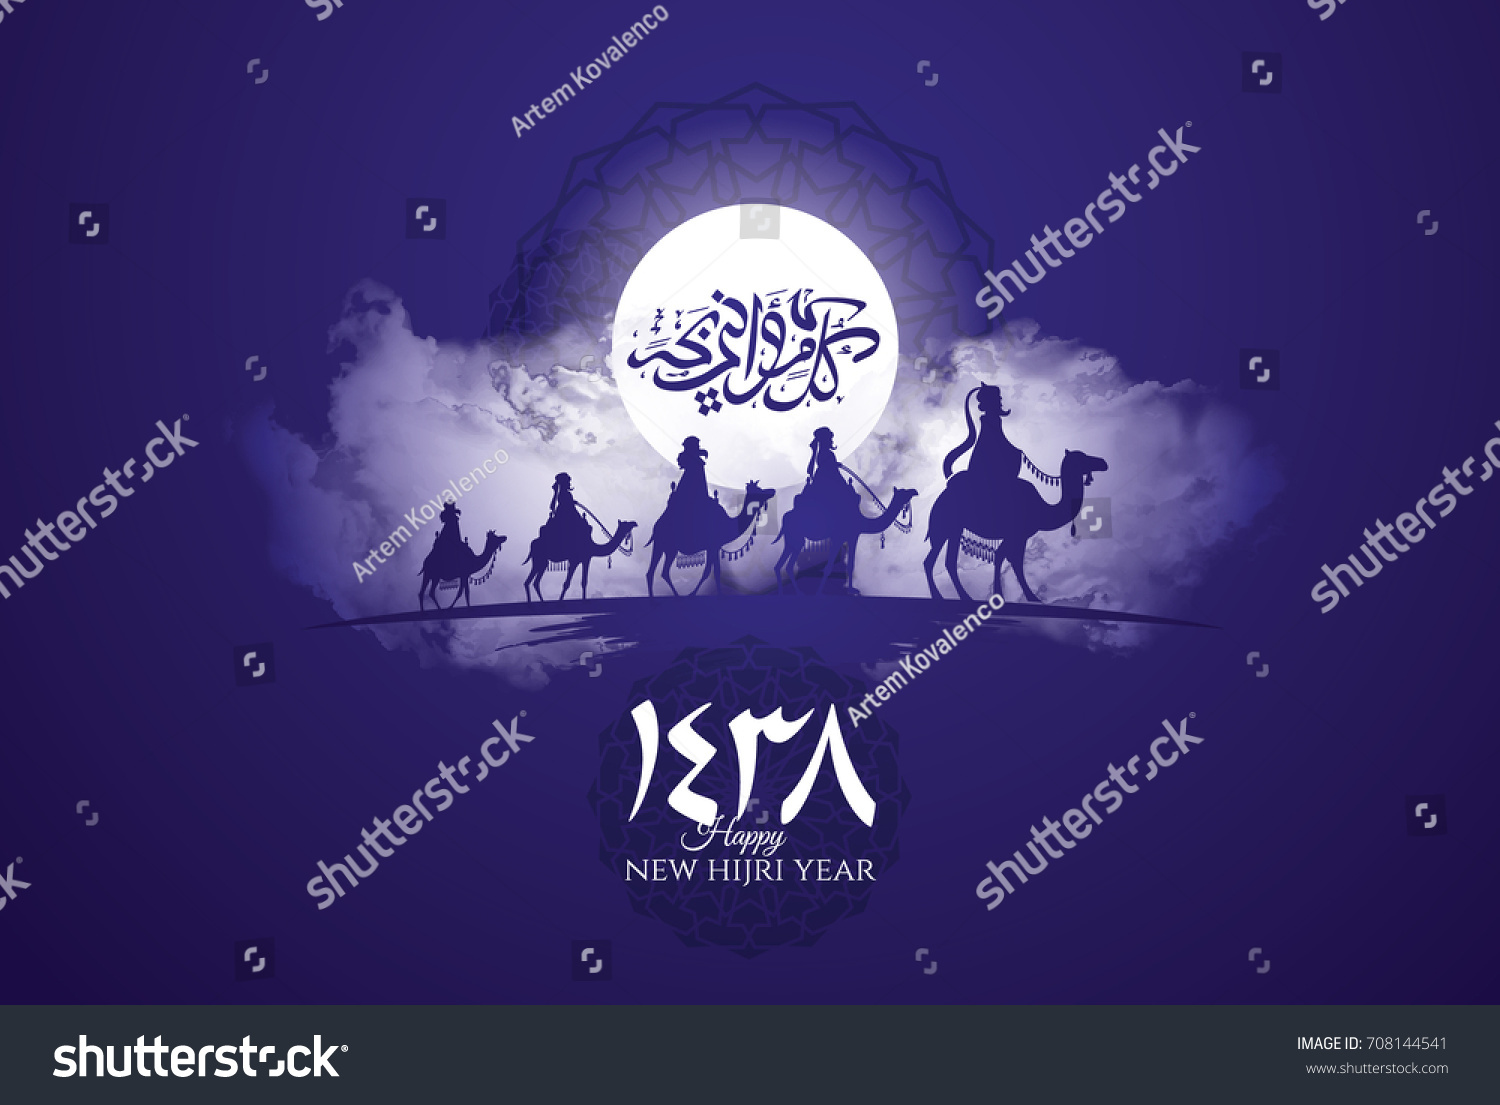 vector illustration happy new Hijri year 1438. Happy Islamic New Year. Graphic design for the decoration of gift certificates, banners and flyer. Translation from Arabic : happy new Hijri year #708144541